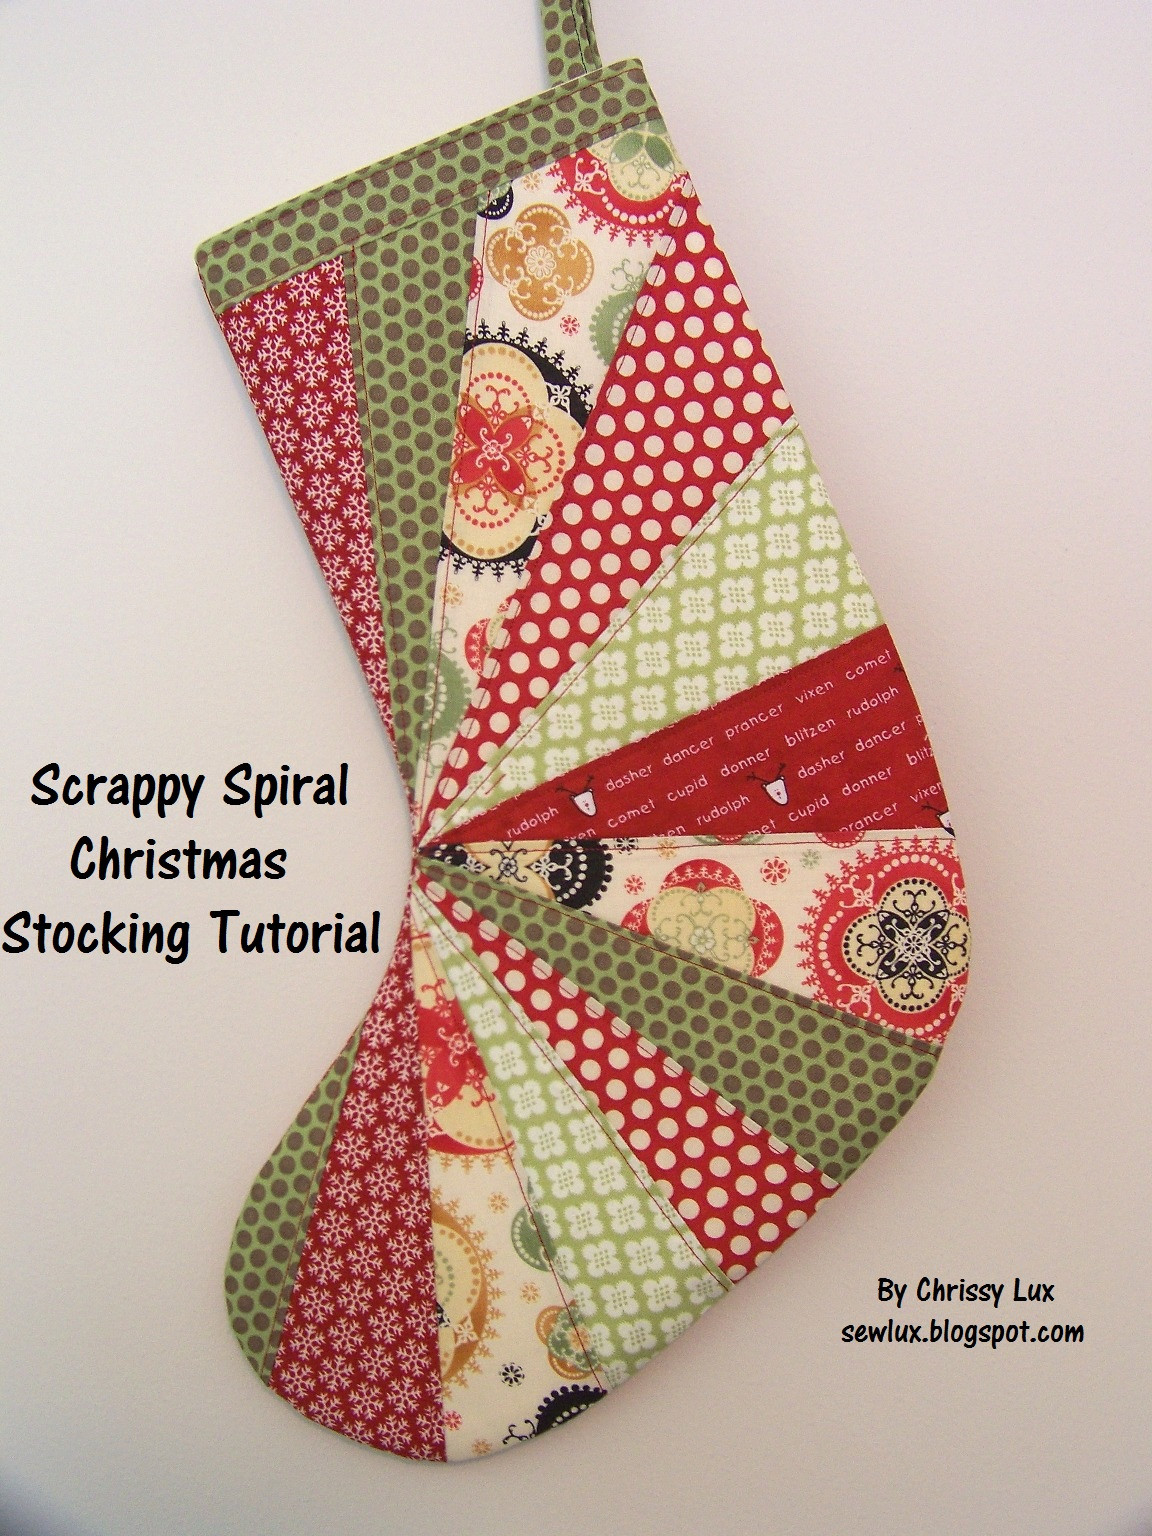 Stocking Pattern Best Of Sew Lux Fabric Blog Scrappy Spiral Stocking Tutorial Of New 44 Models Stocking Pattern